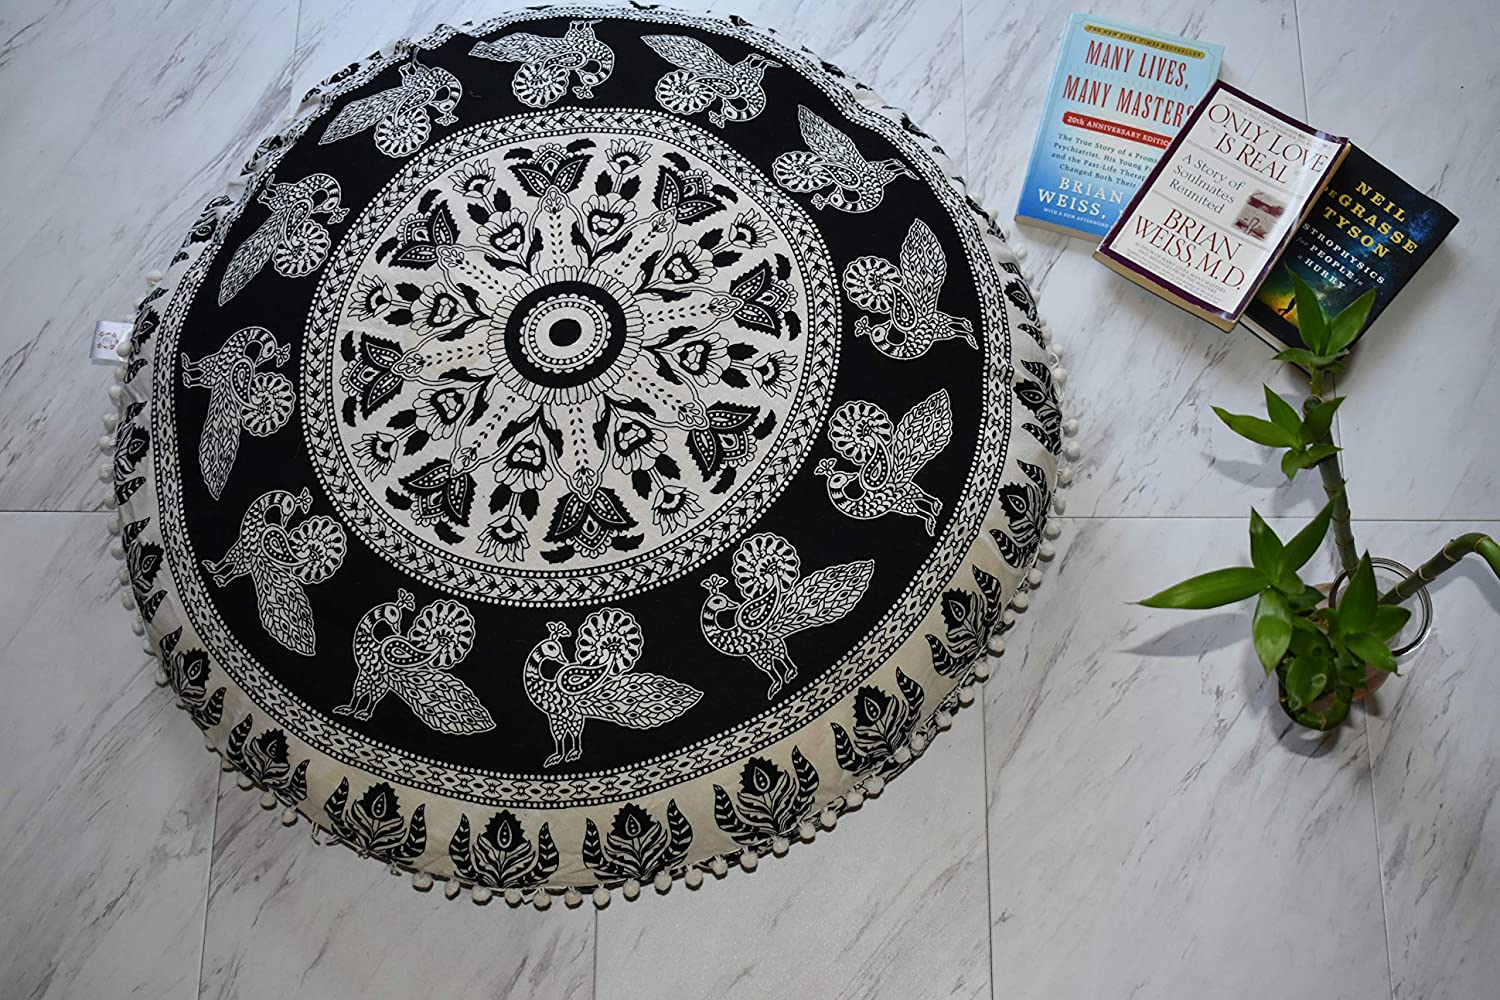 Black /& White Elephants Large 32 Inch Floor Pillow Level Up Retail Meditation Pillow Cushion Included